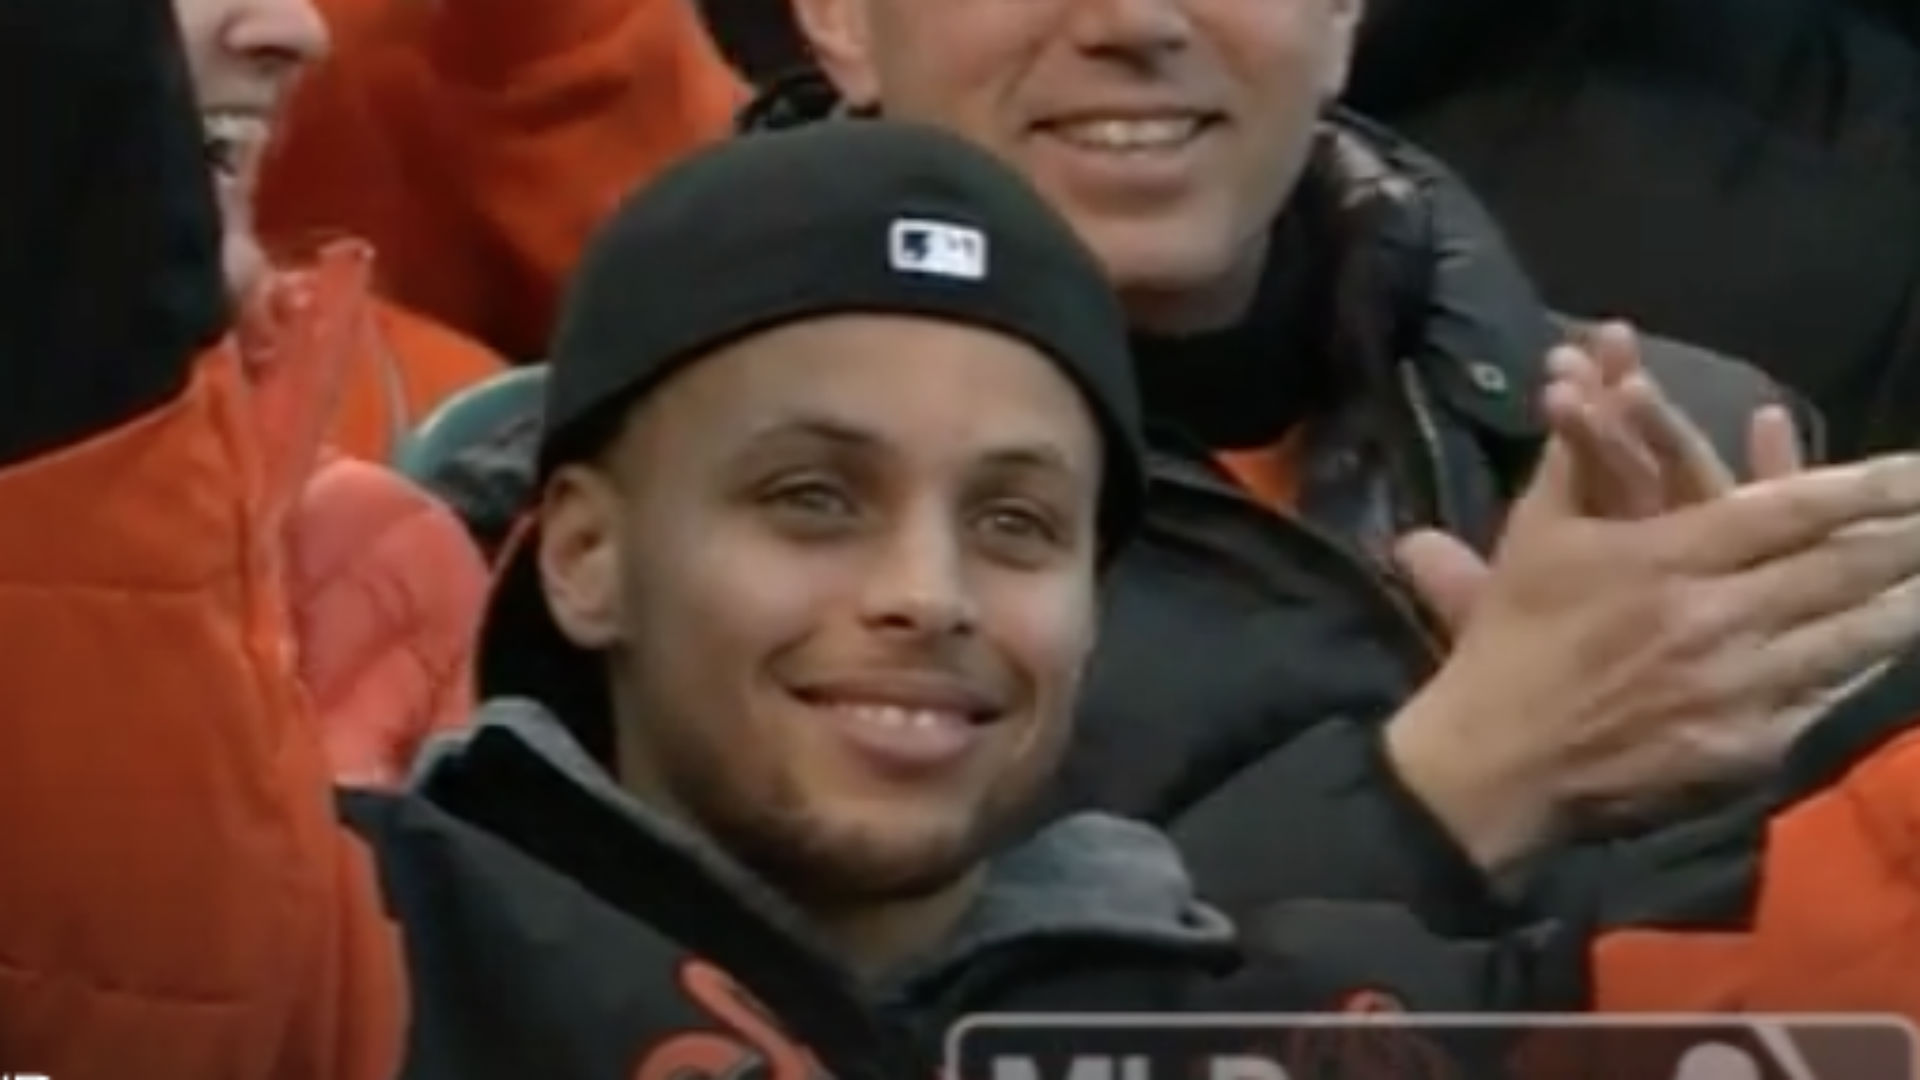 Stephen Curry makes appearance at Giants game